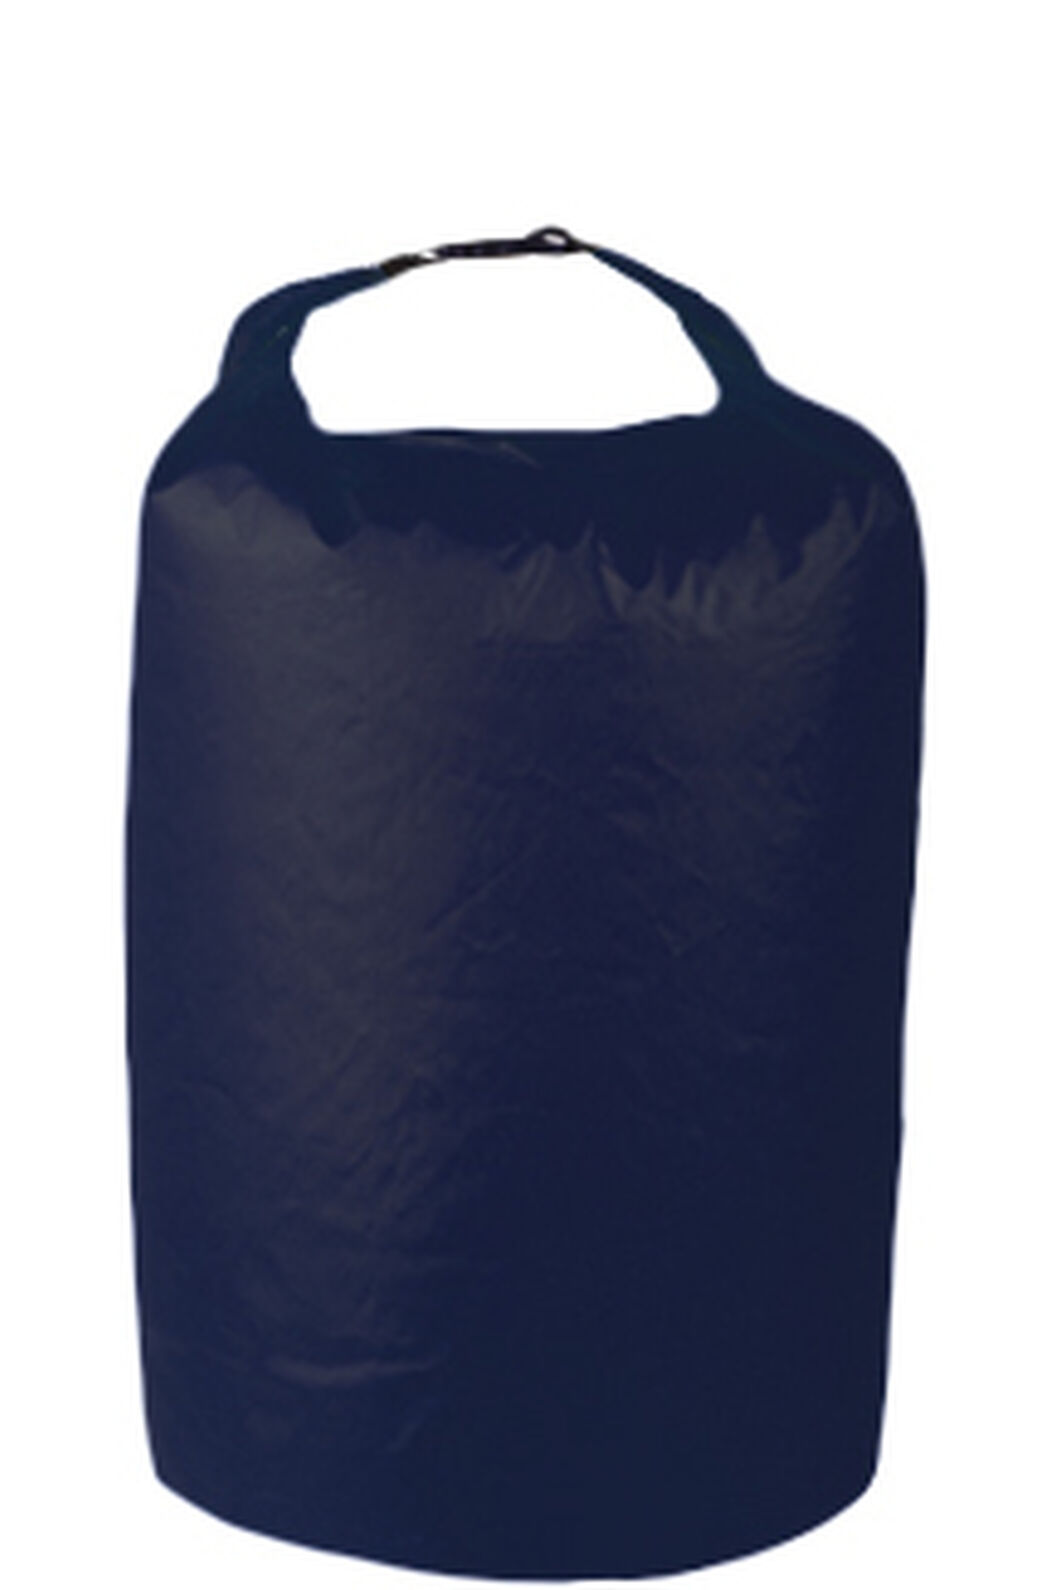 Macpac Ultralight Dry Bag 20 L, Sodalite Blue, hi-res